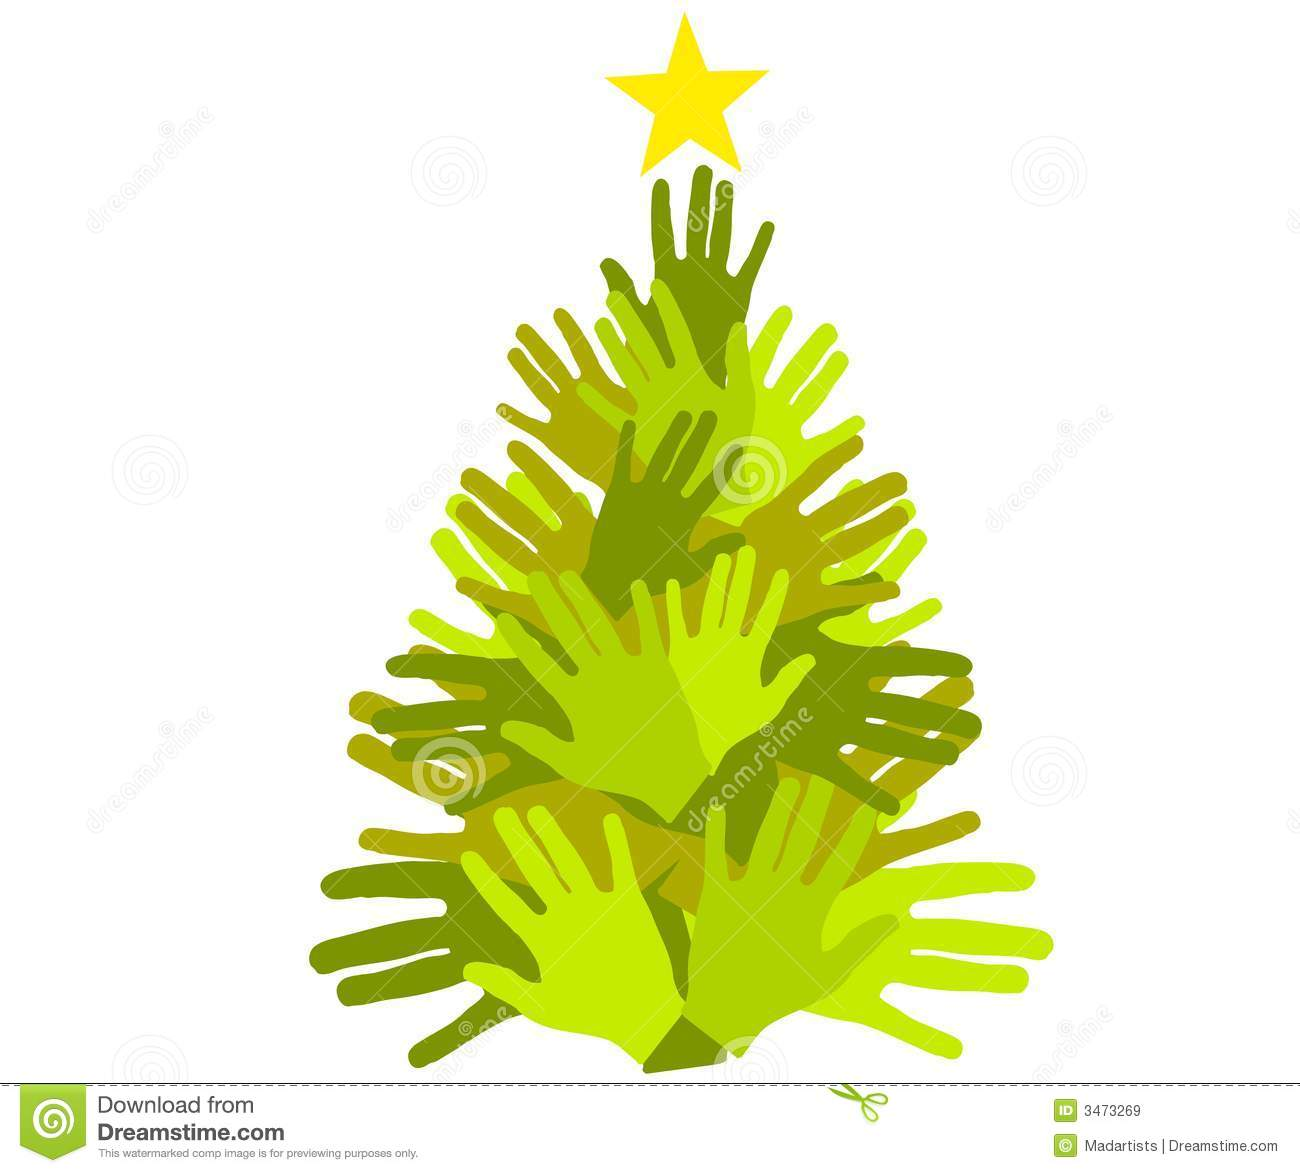 Christmas Giving Clipart.Christmas Tree Giving Hands Stock Illustration